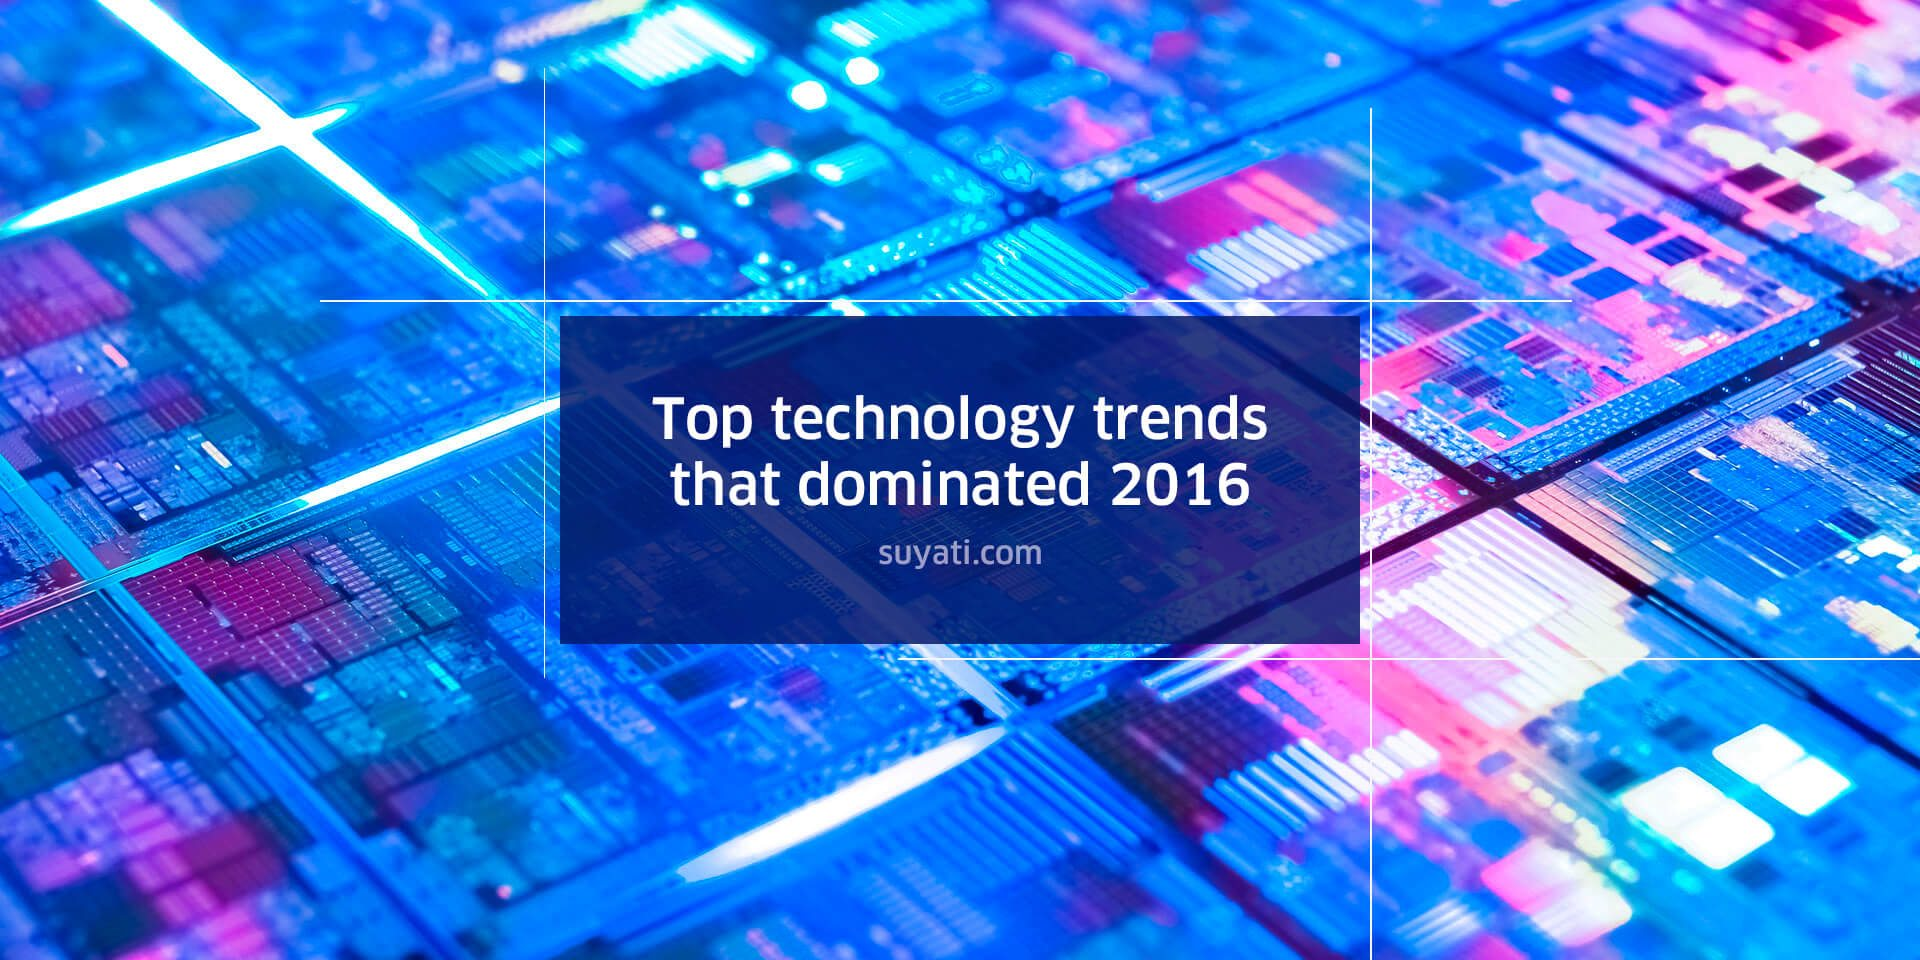 a-quick-glance-at-the-top-technology-trends-that-dominated-2016